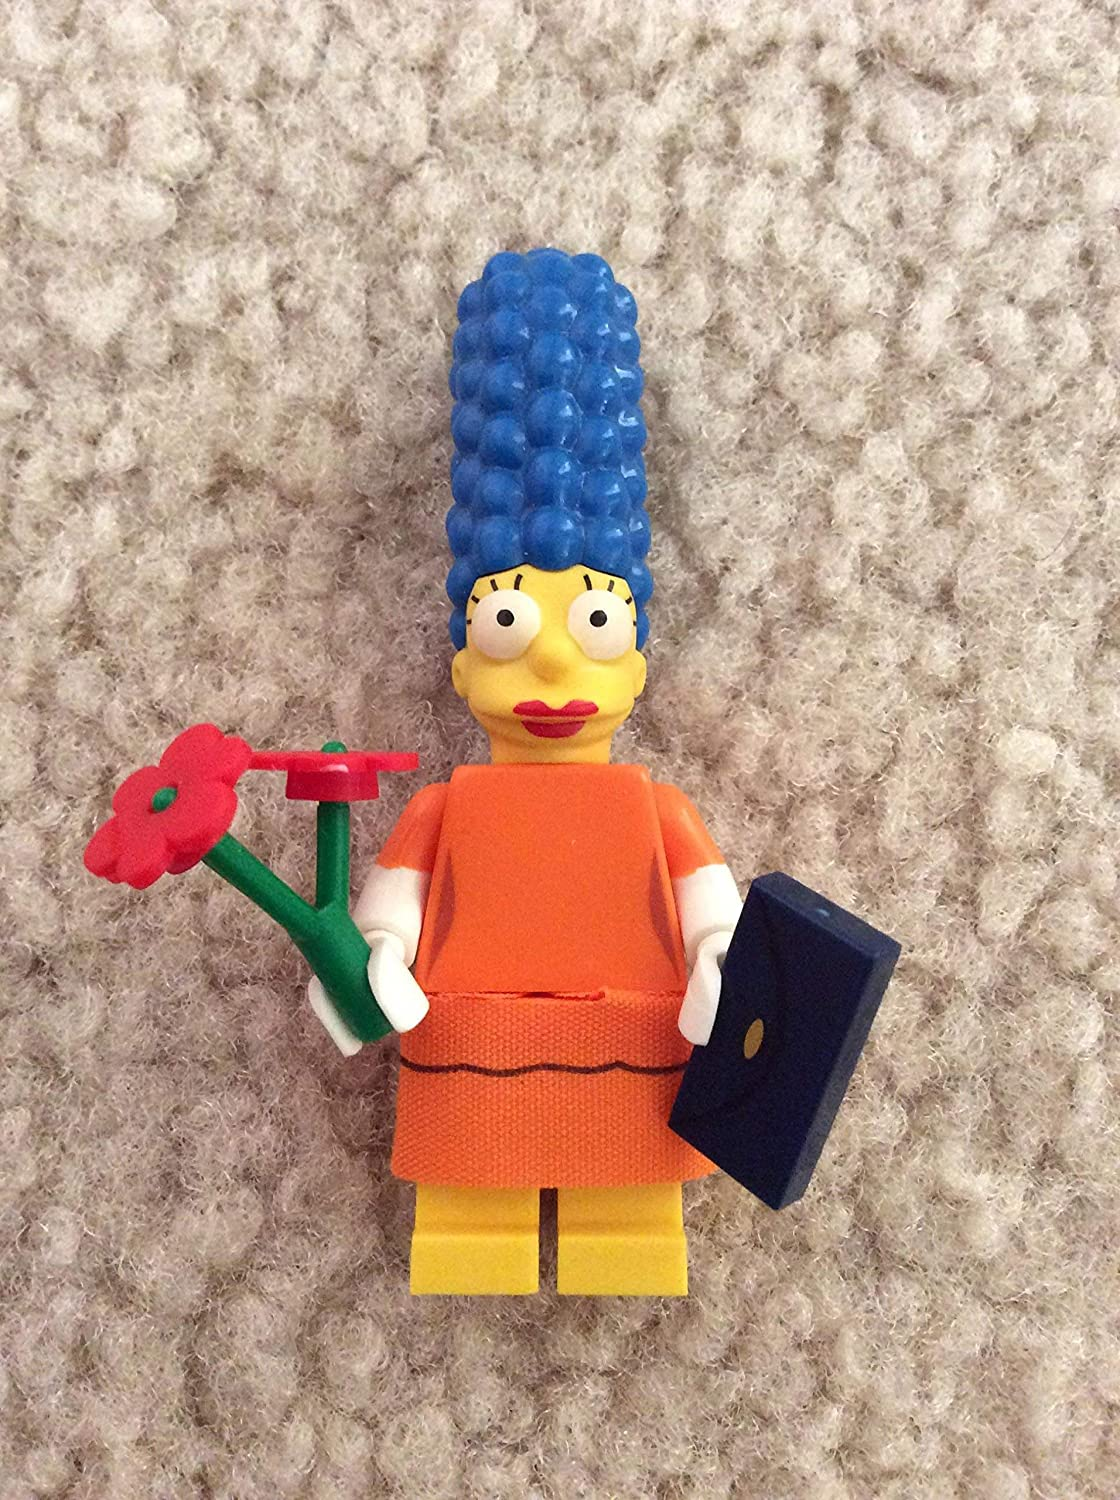 LEGO MINIFIGURES SERIES 1 THE SIMPSONS X 1 HEAD FOR MAGGIE SIMPSON PARTS